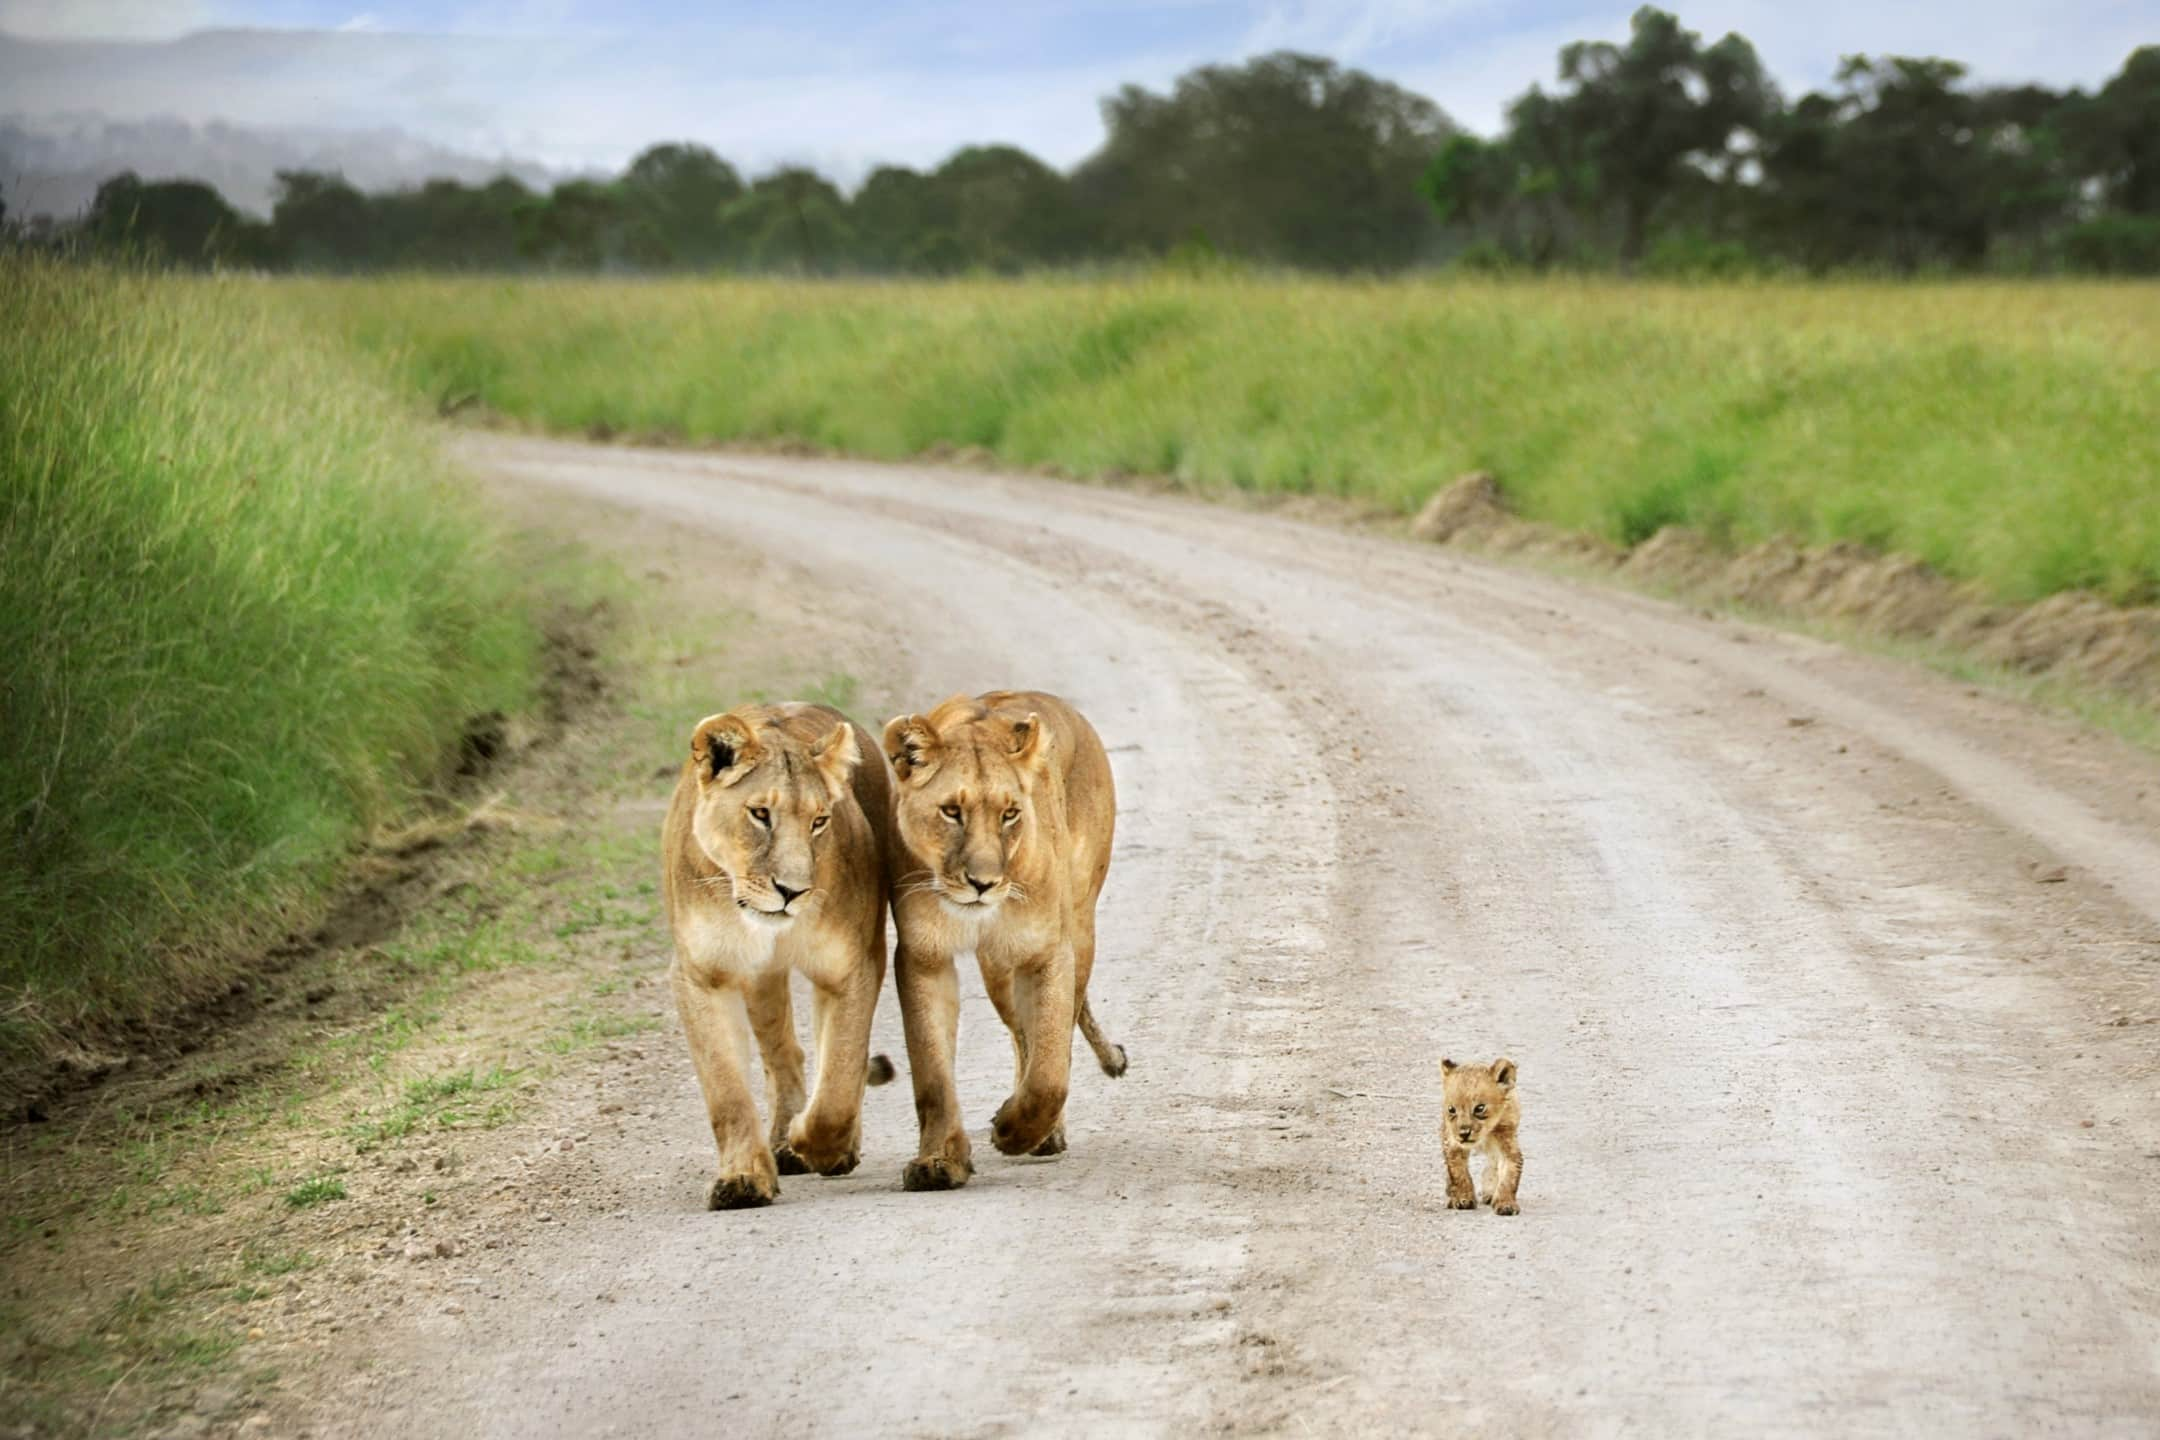 Lions with cub on Kruger road